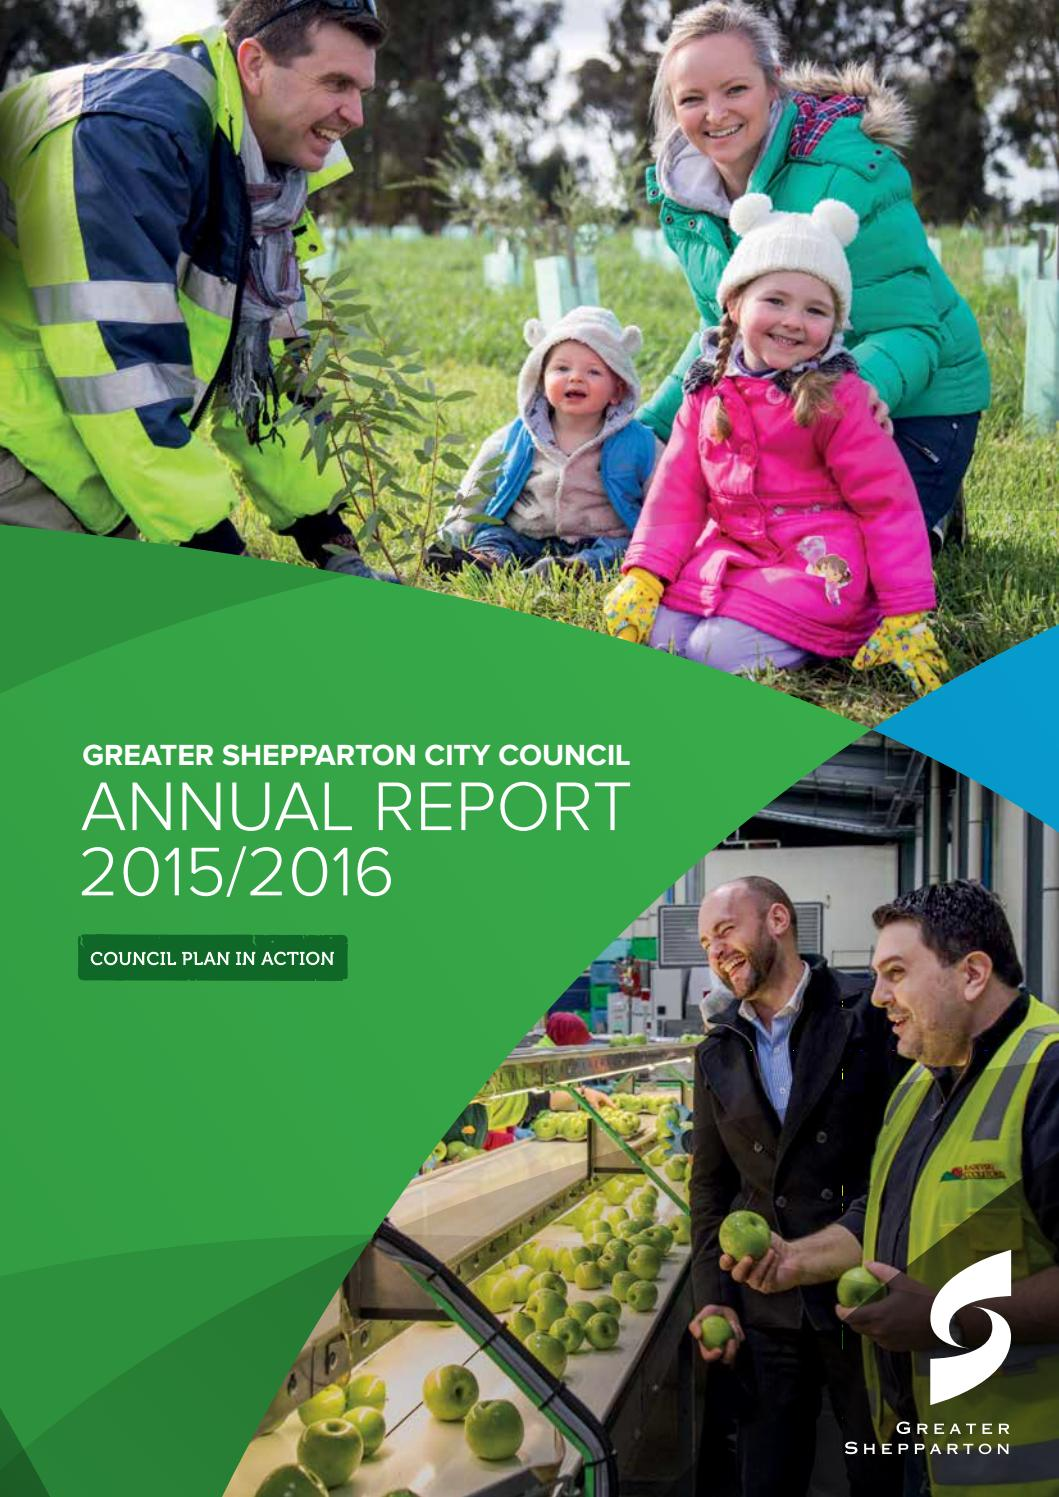 Kinder Garden: Greater Shepparton City Council Annual Report 2015/16 By